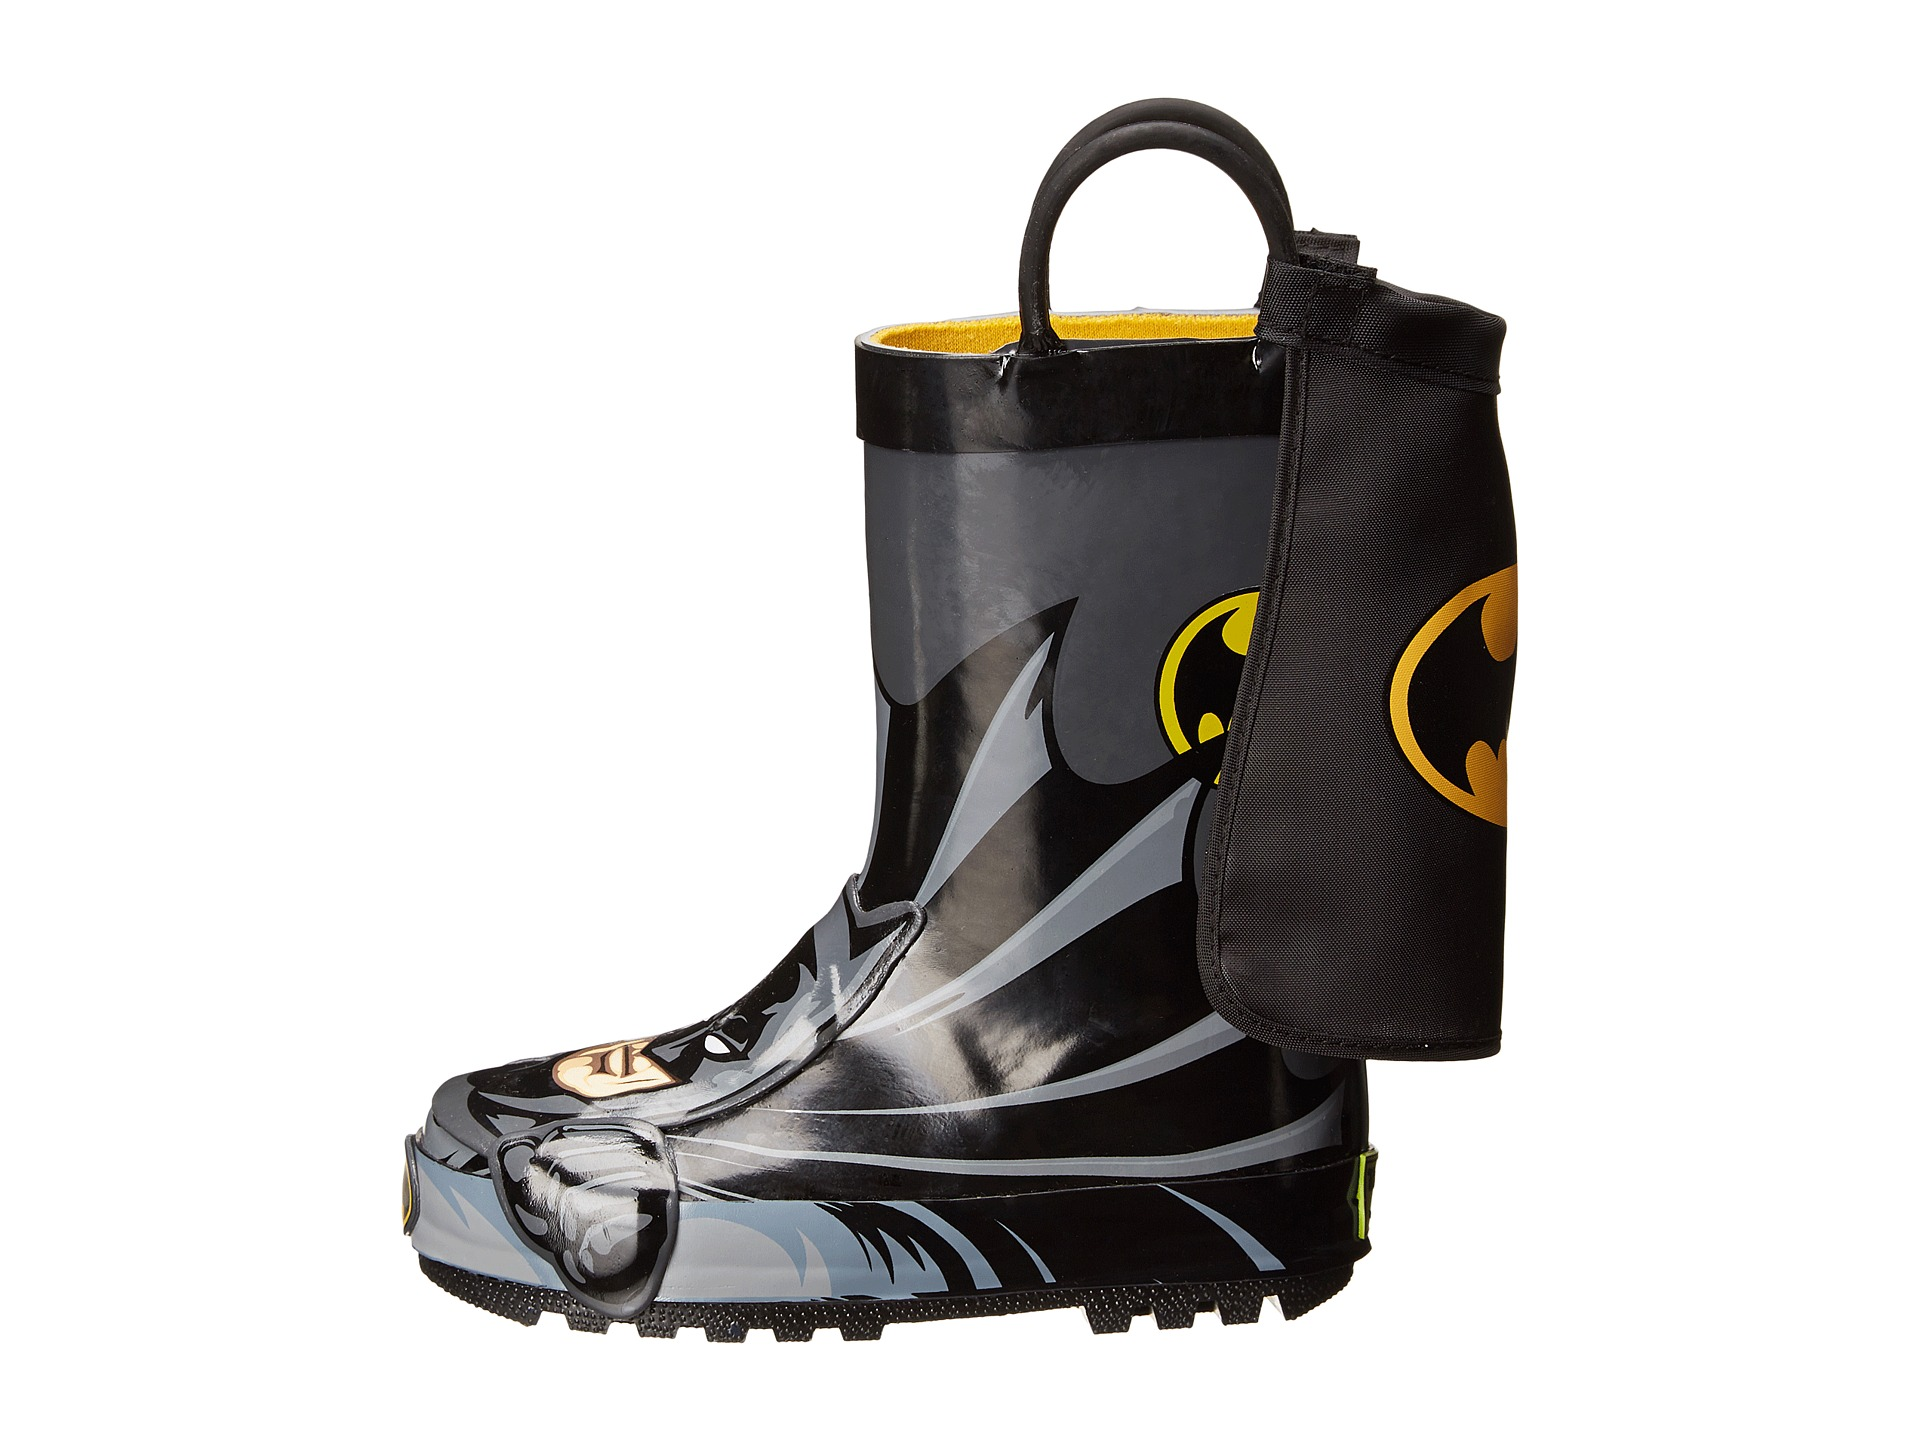 24software.ml: batman rain boots for kids. From The Community. Amazon Try Prime All cleaning your Western Chief Kids Rain Boots with a damp, warm cloth and DC Comics Kids Boys' Batman Character Printed Waterproof Easy-On Rubber Rain Boots (Toddler/Little Kids) by DC Comics.